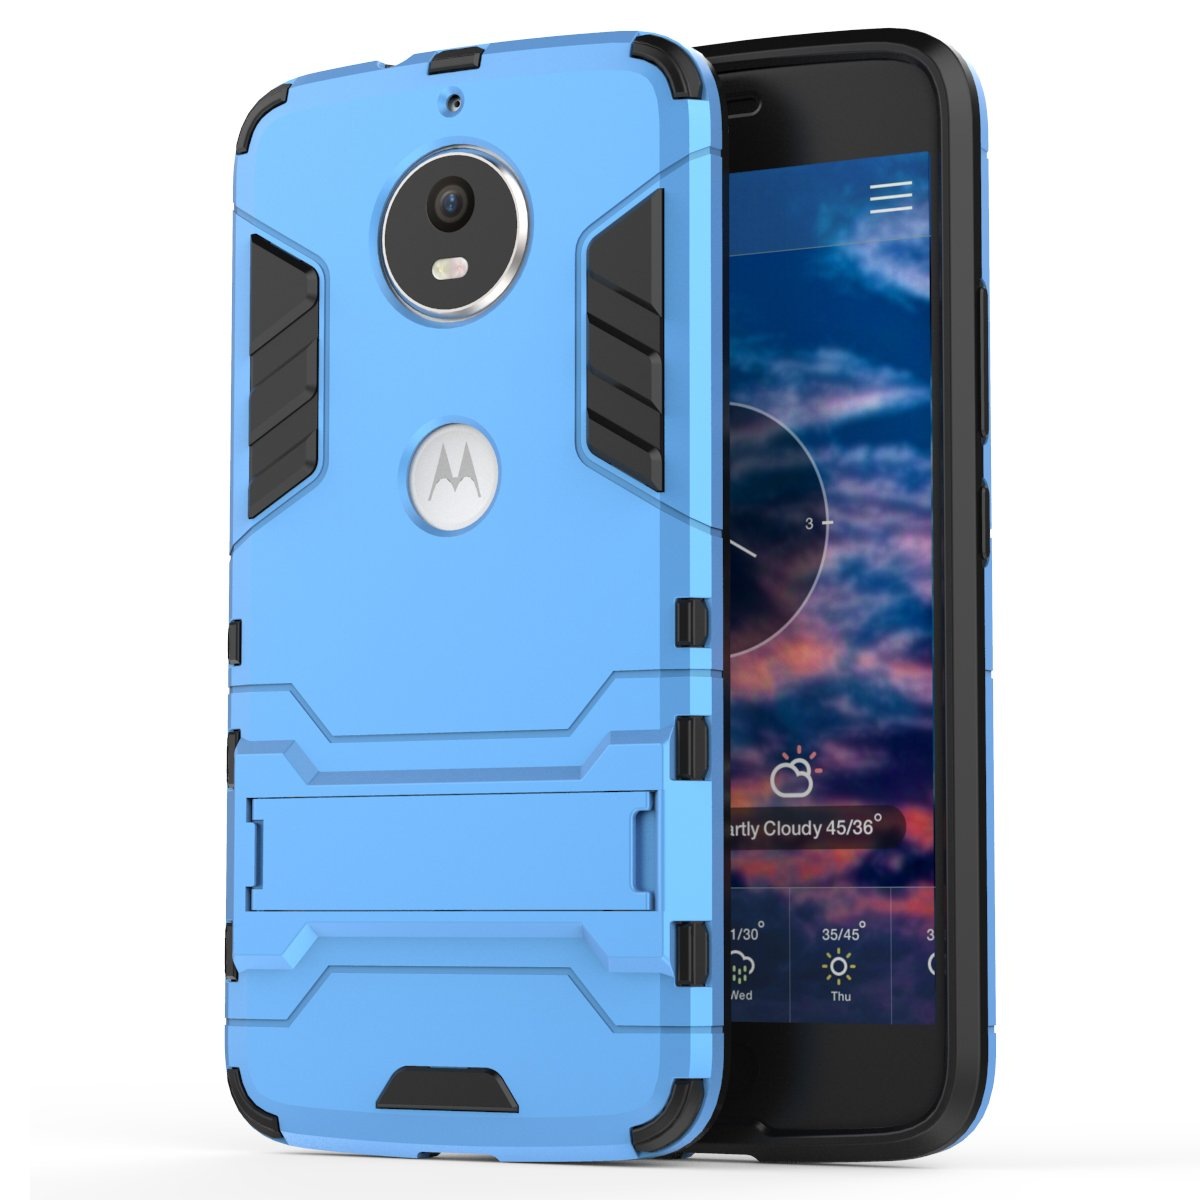 Moto G6 Case, Moto G6 Hybrid Case, Dual Layer Shockproof Hybrid Rugged Case Hard Shell Cover with Kickstand for Motorola Moto G6 [NOT fit Moto G6 ...